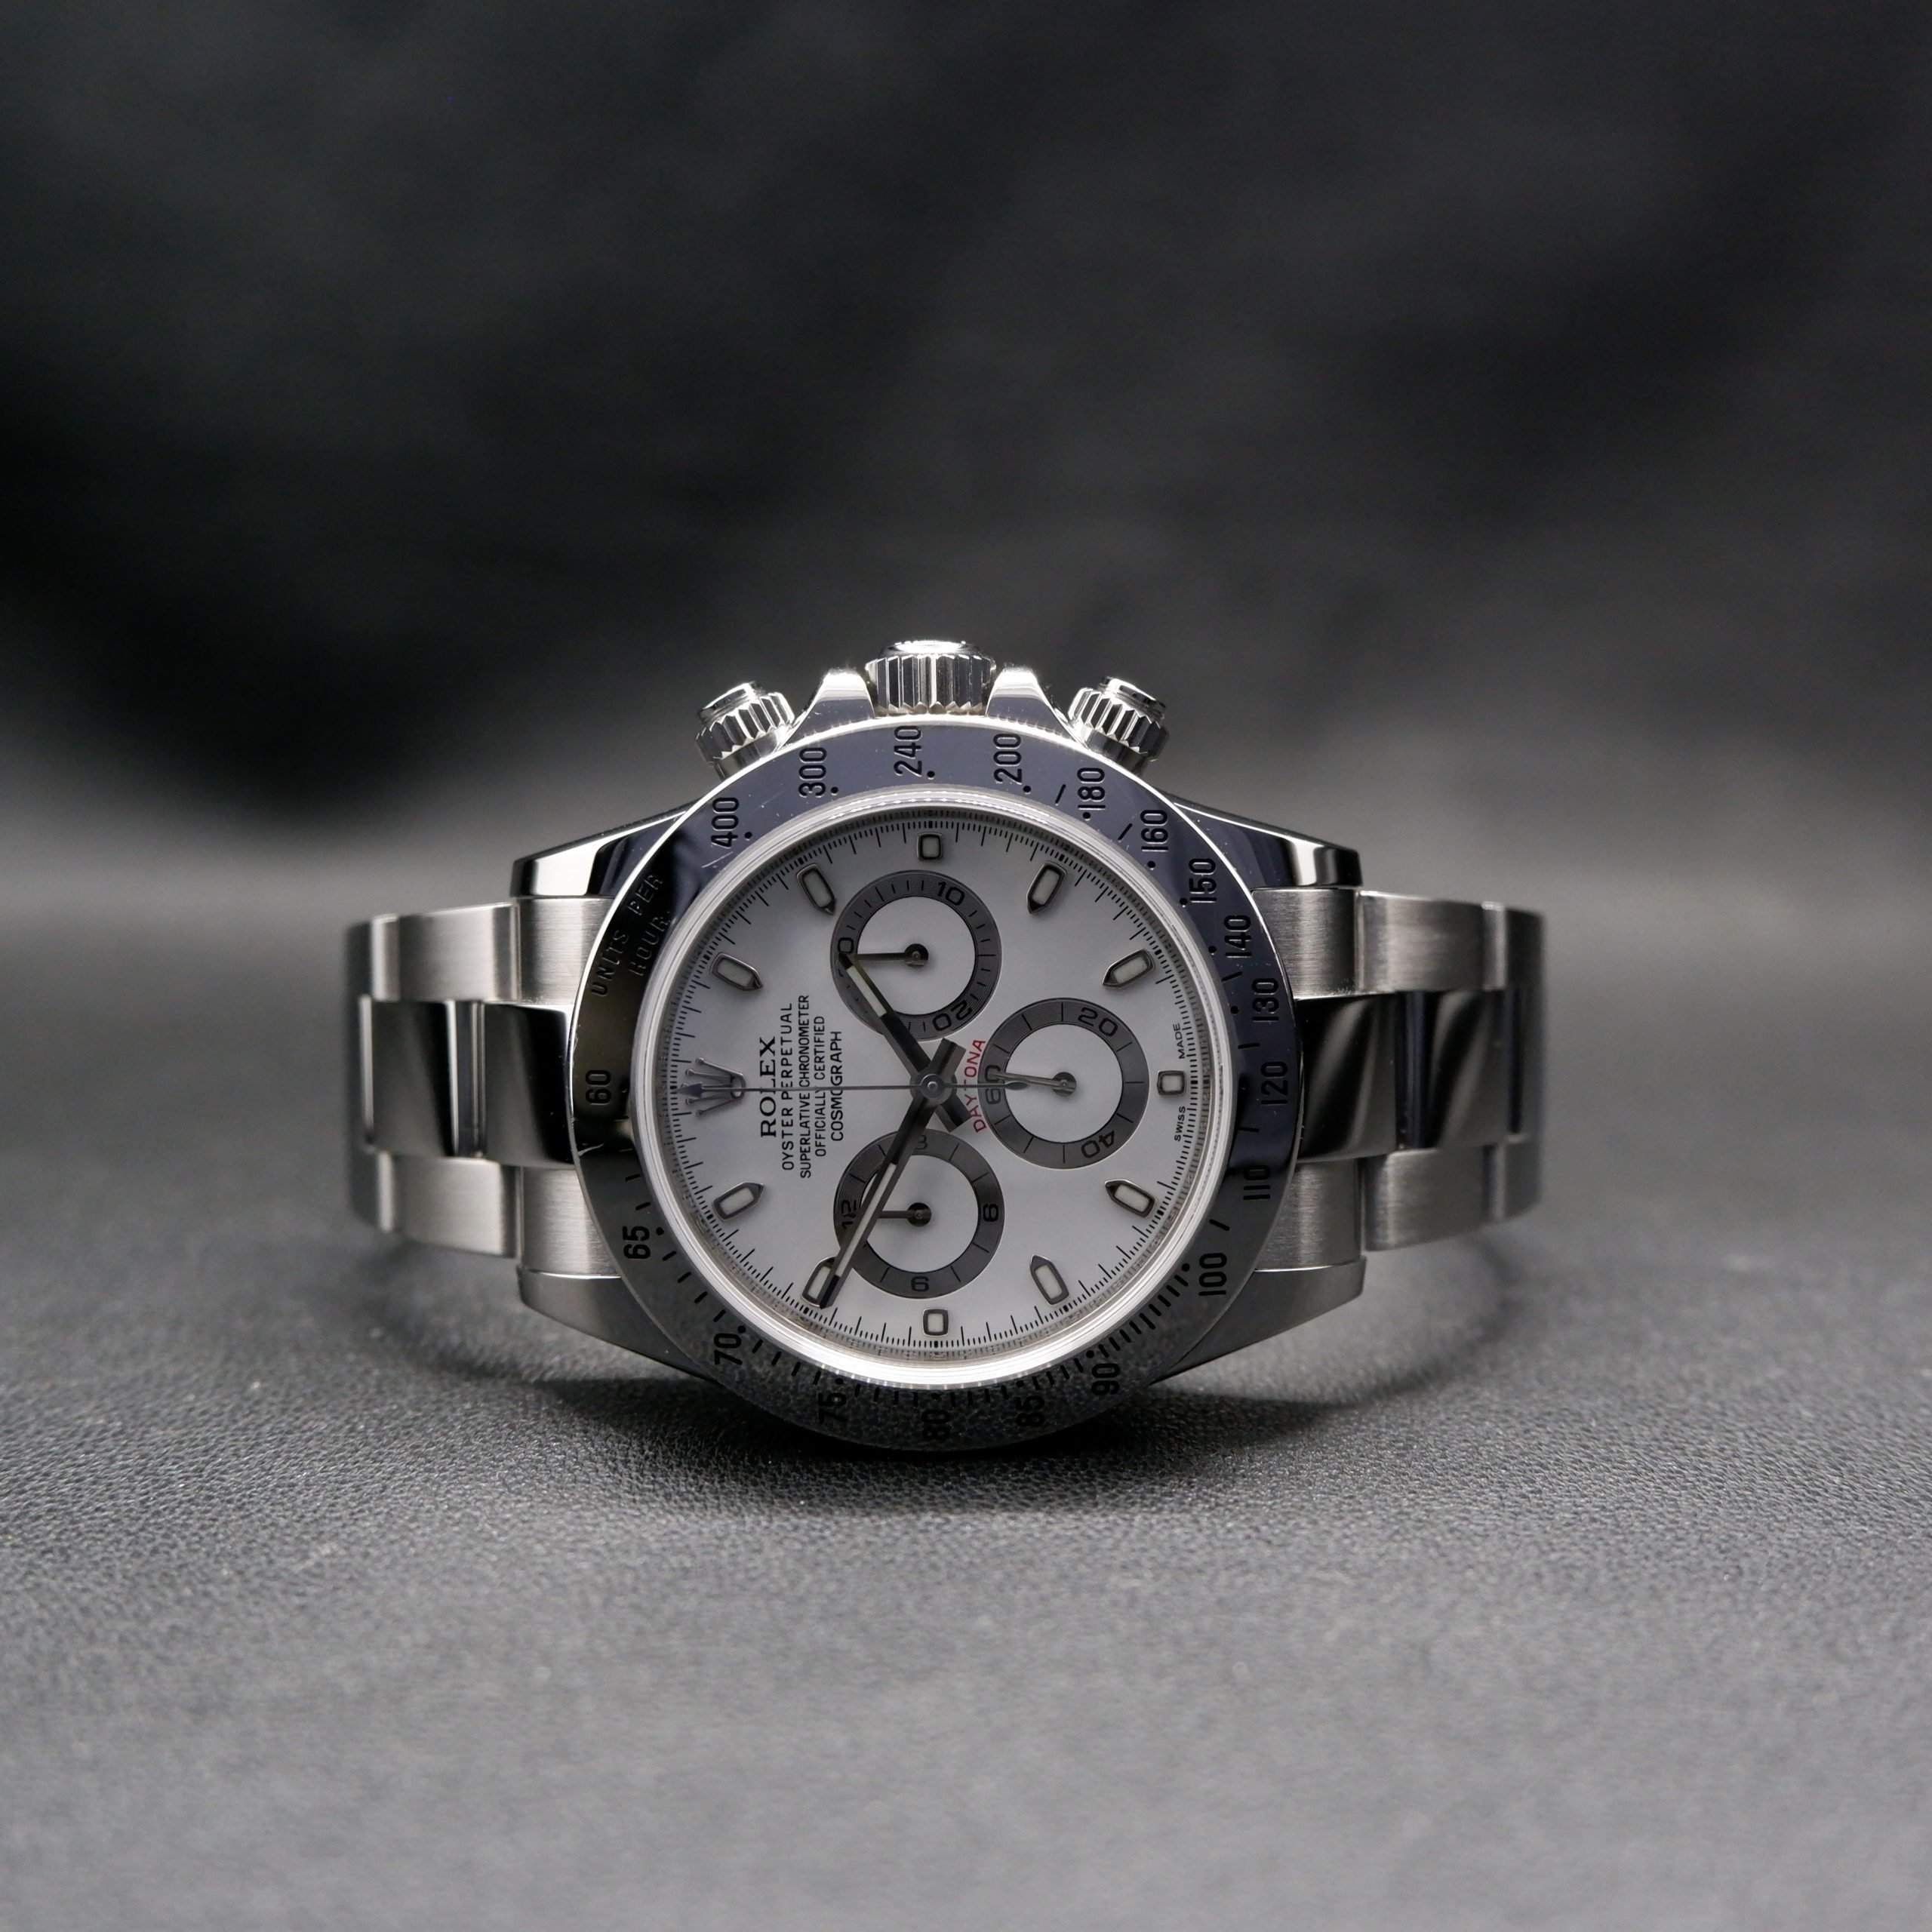 The Daytona ref. 116520 with a white dial is very popular on Chrono24